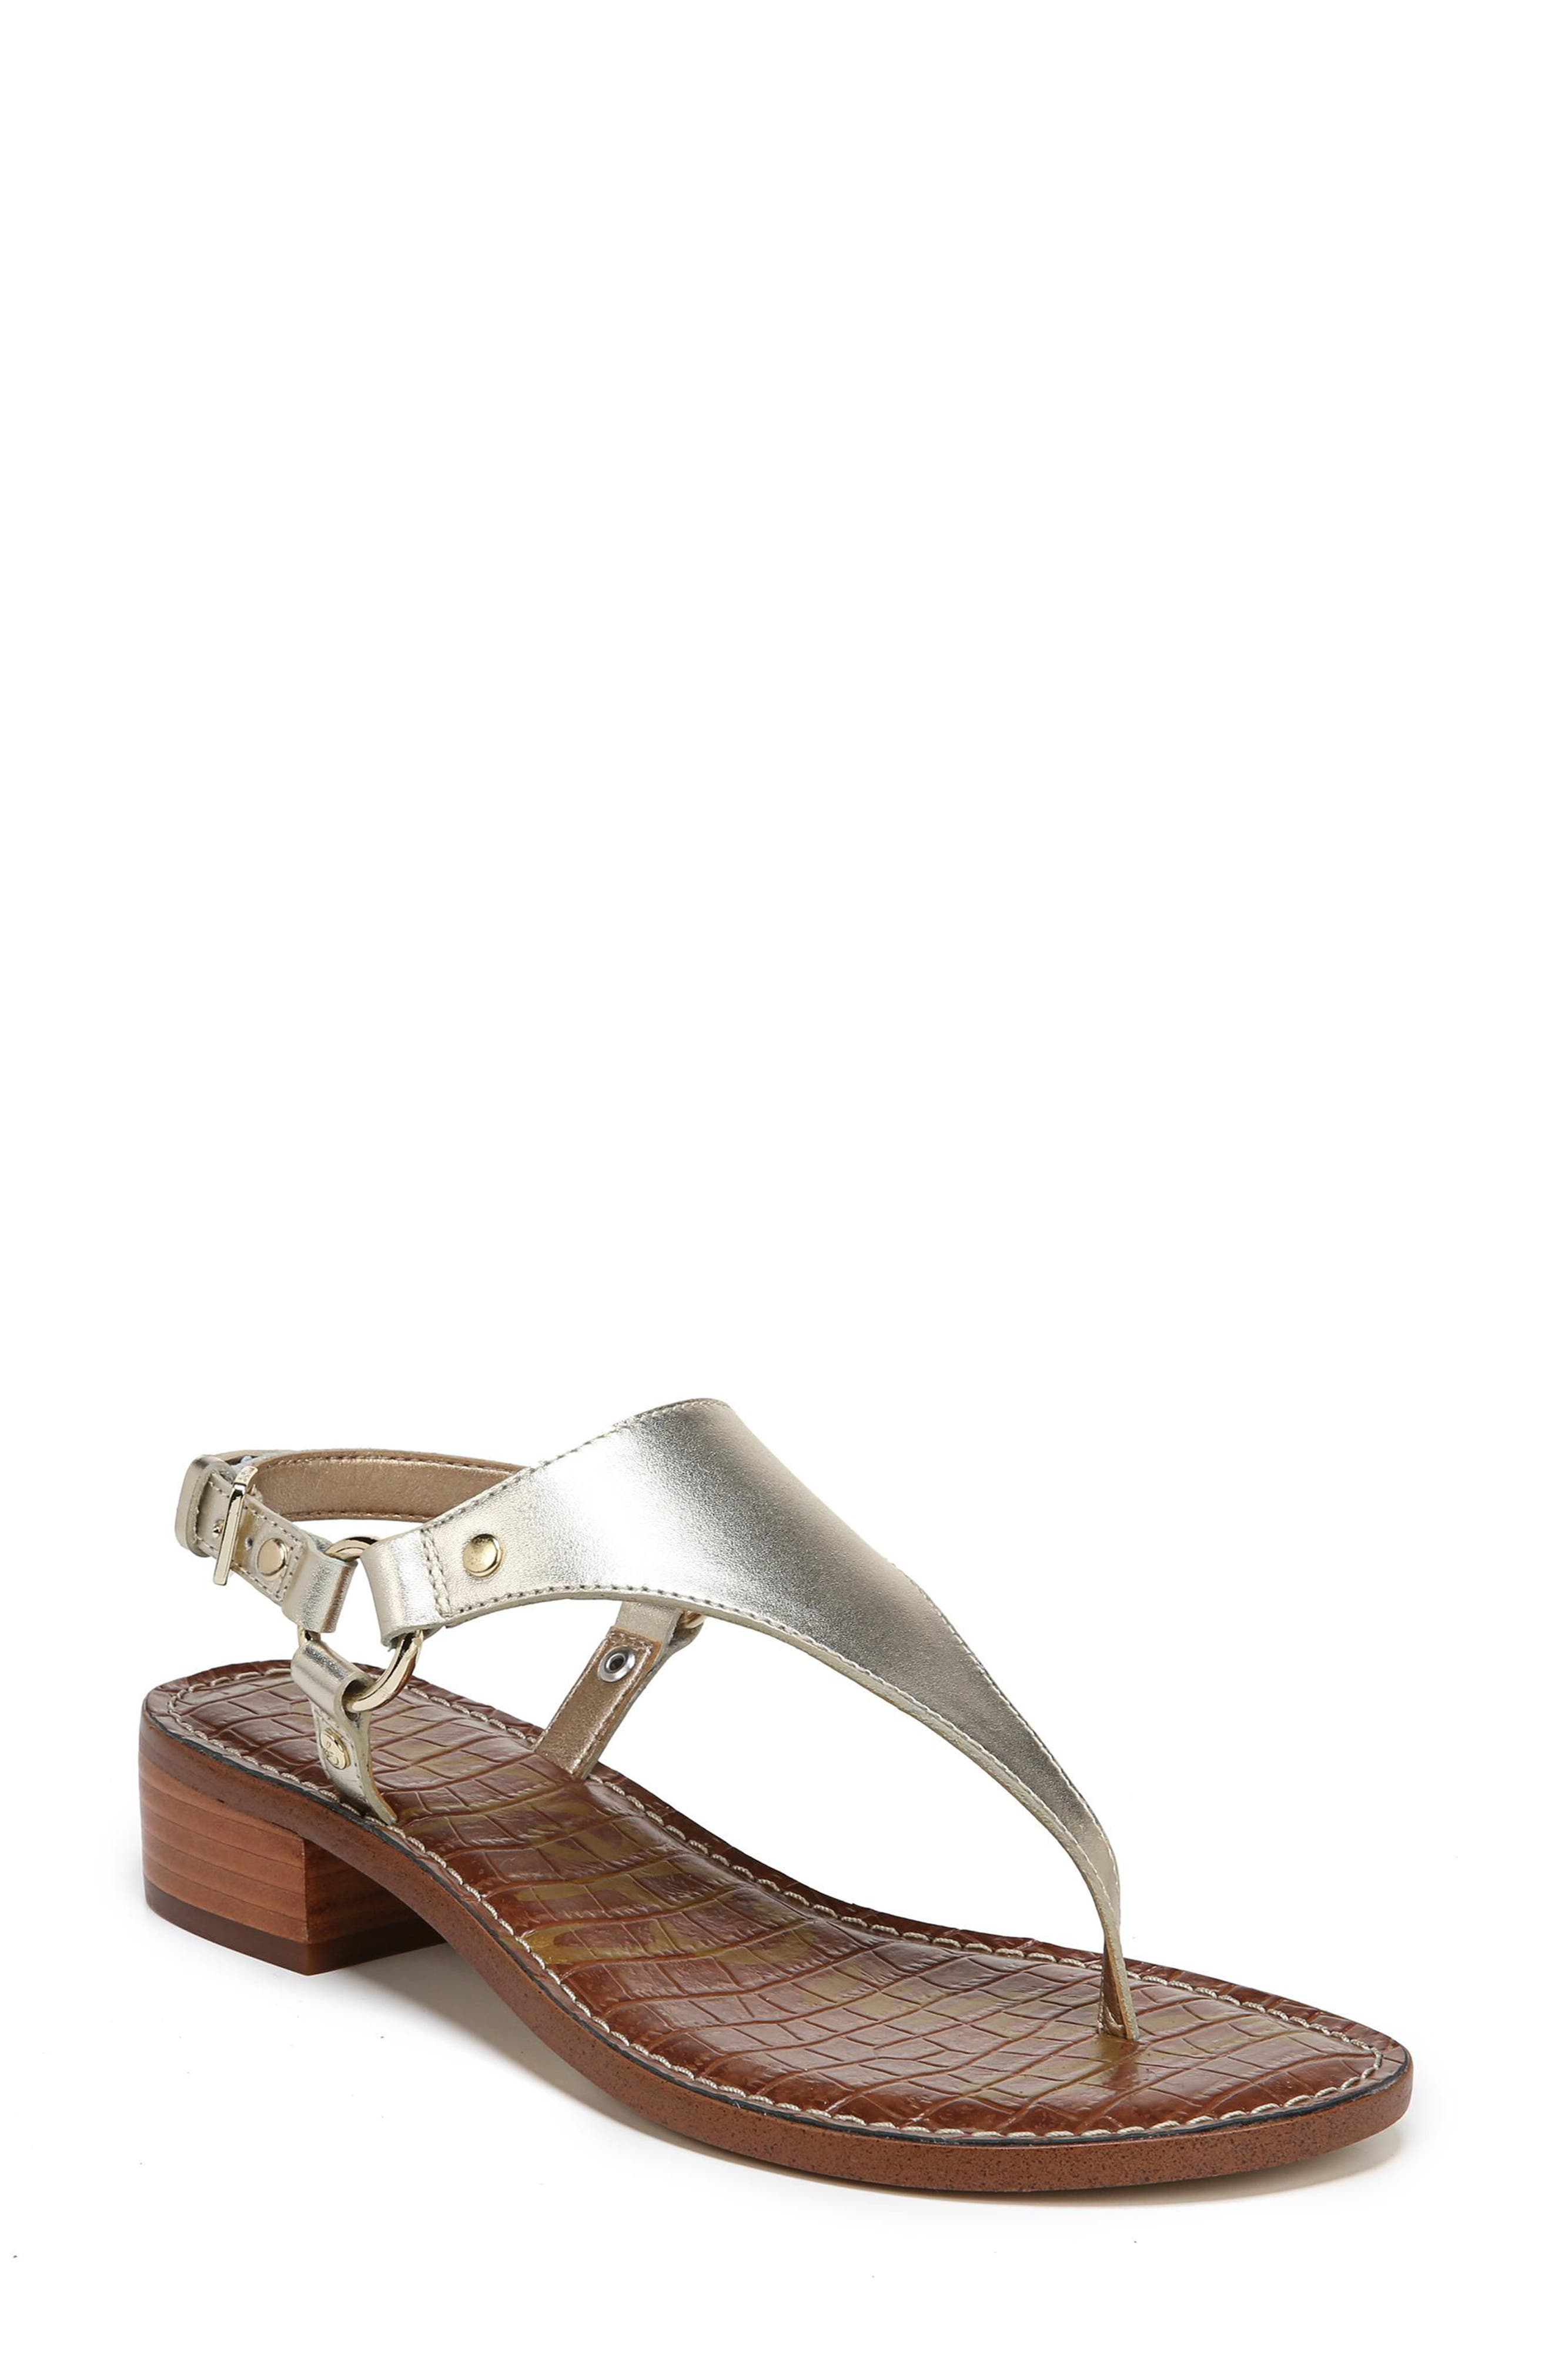 Jude Sandal,                         Main,                         color, Molten Gold Leather